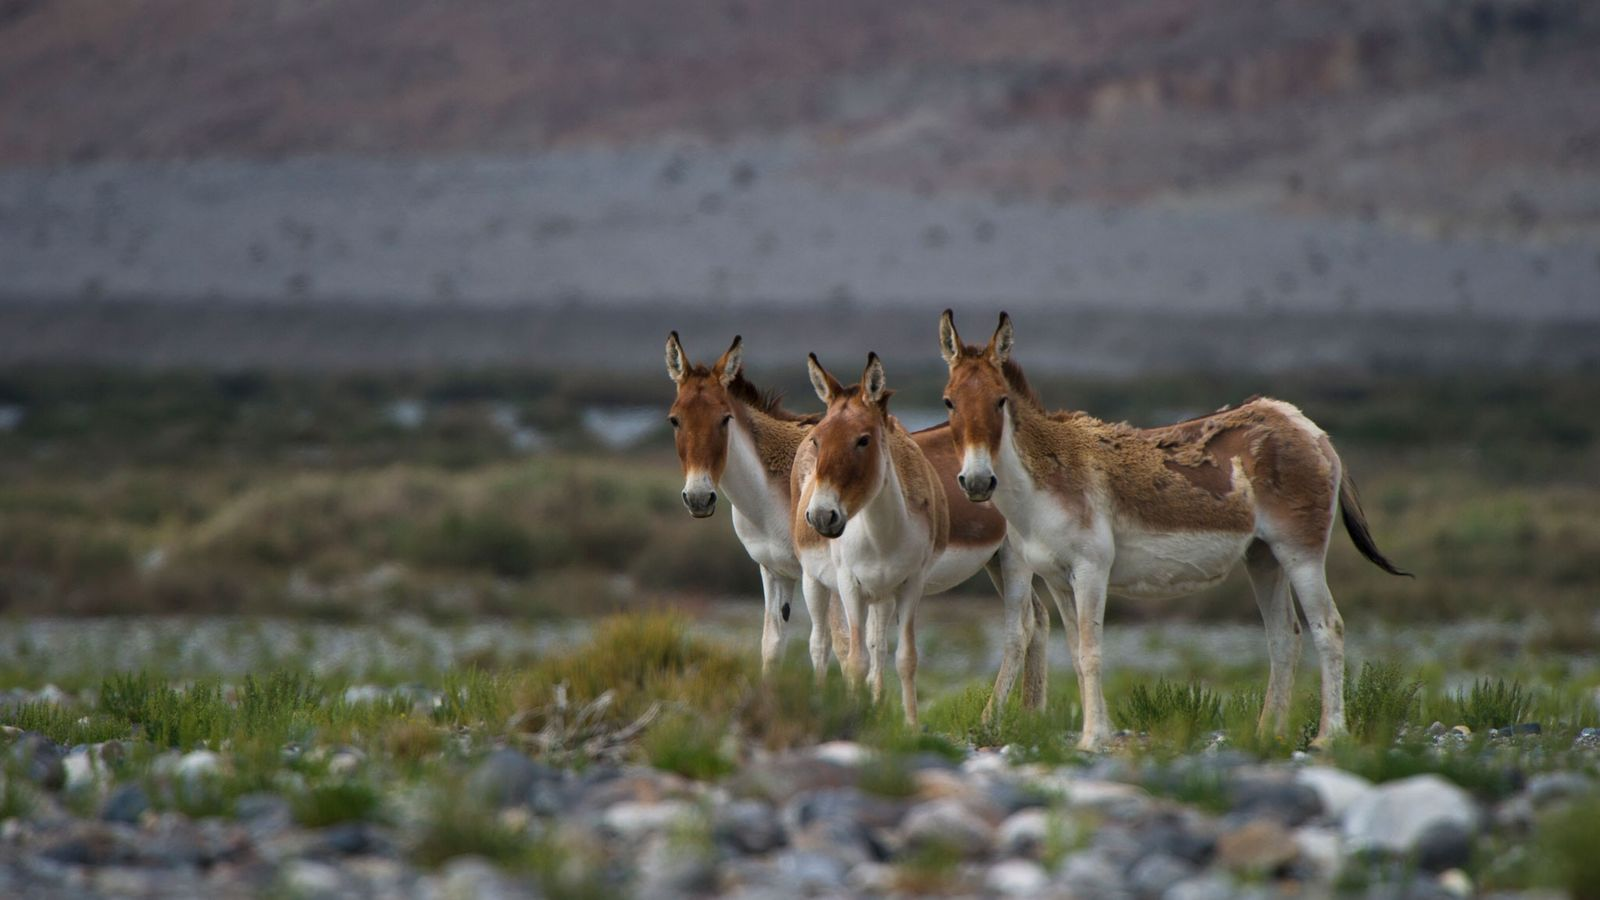 While donkeys, like these in China's Taklamakan Desert, are not generally known for their speed and ...